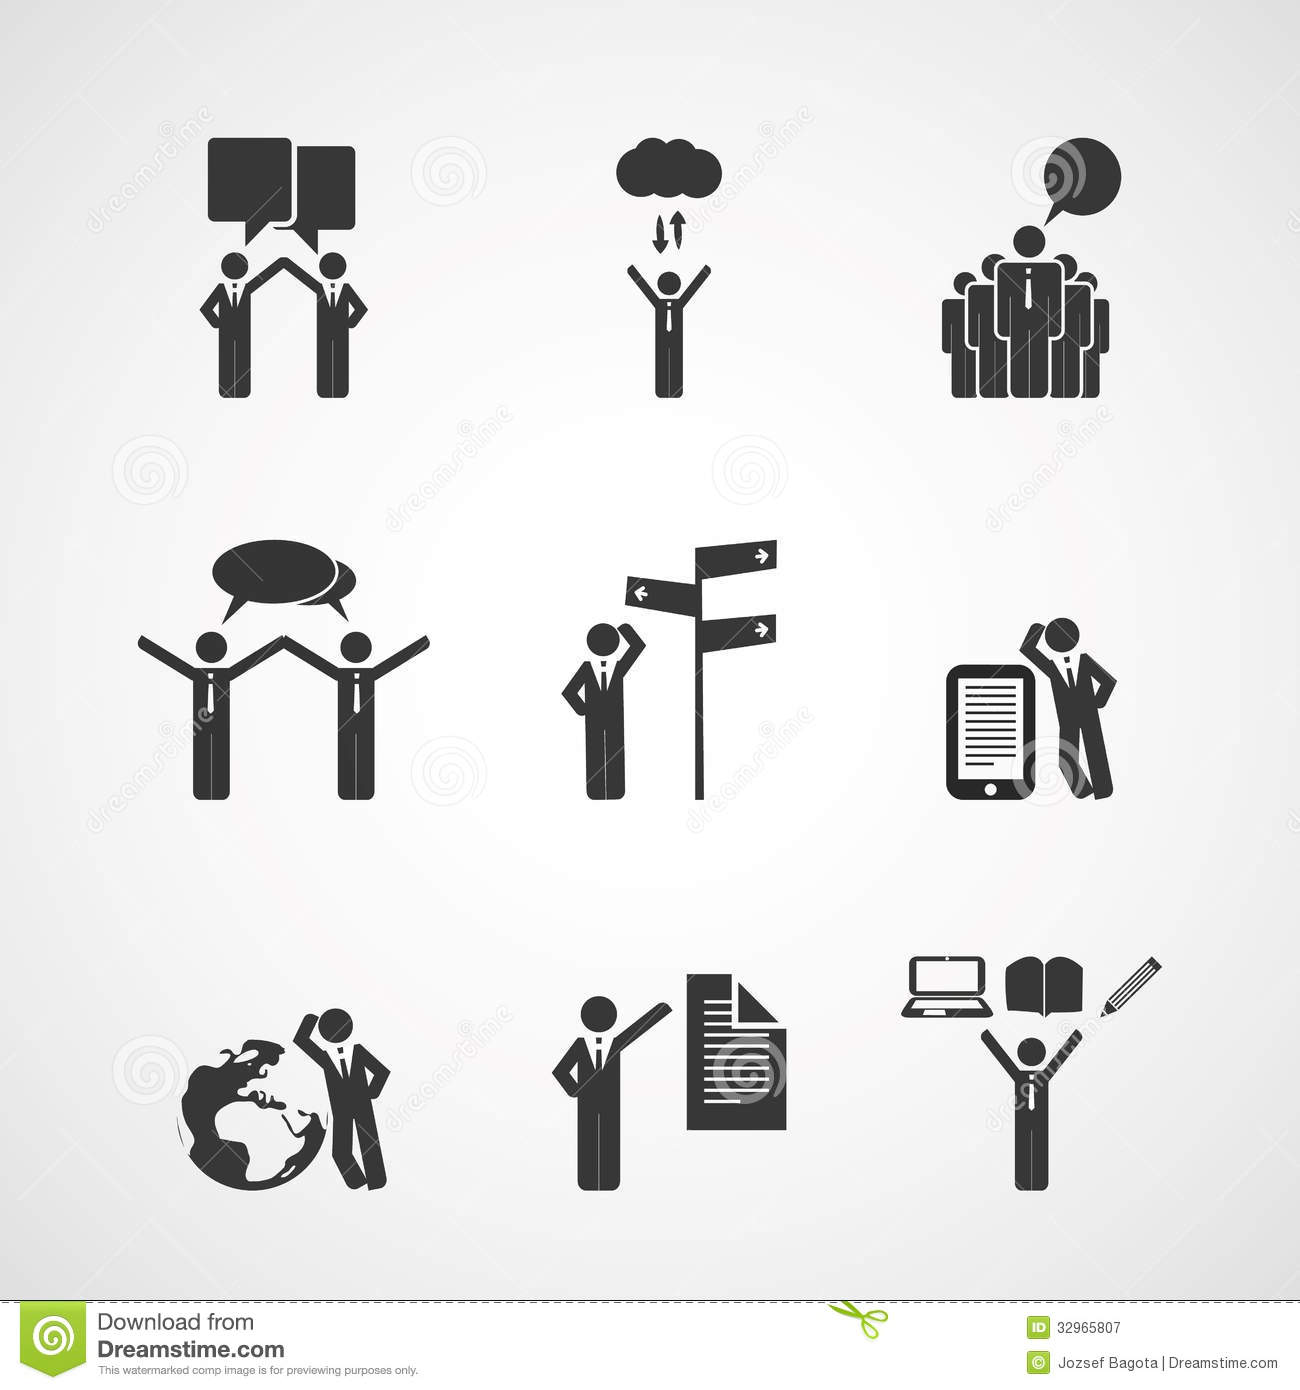 Figures, People's Icons.